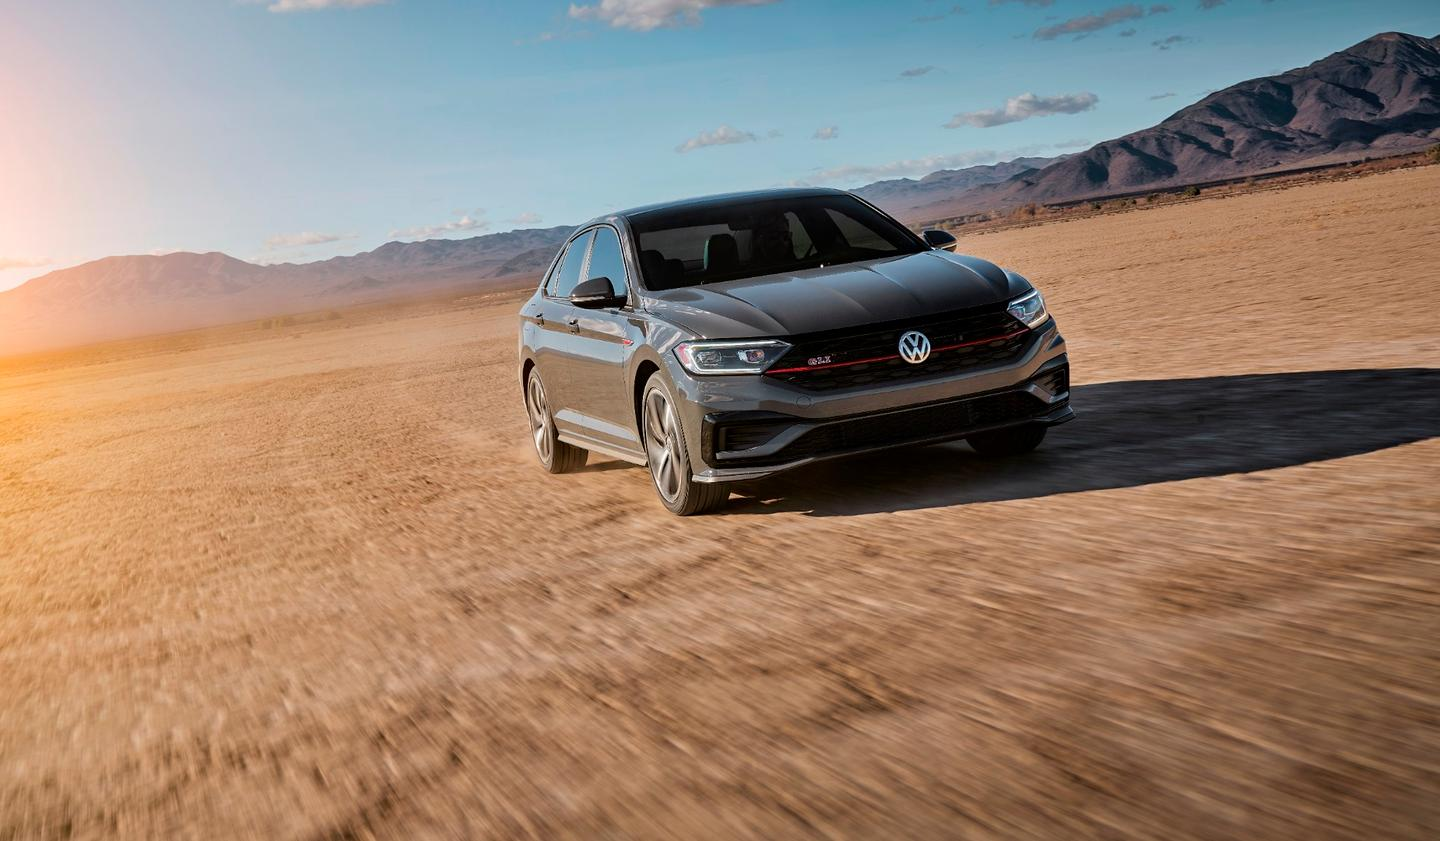 The 2019 VW Jetta GLI adds some styling cues to differentiate it from the standard Jetta models